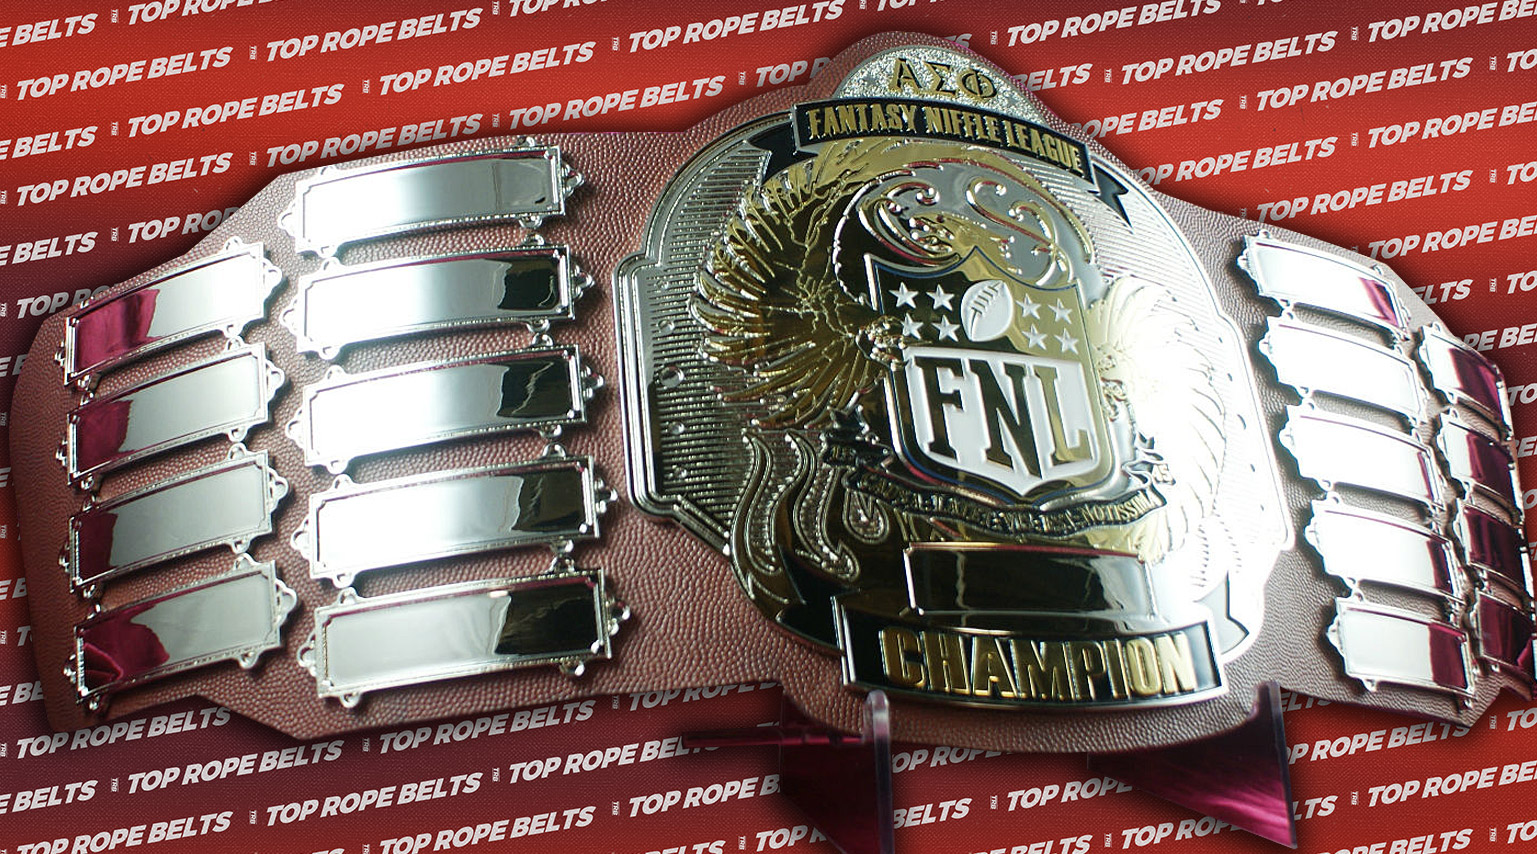 Fantasy Football Belt Trophy http://topropebelts.com/gallery/niffle-fantasy-football-league-championship-belt/